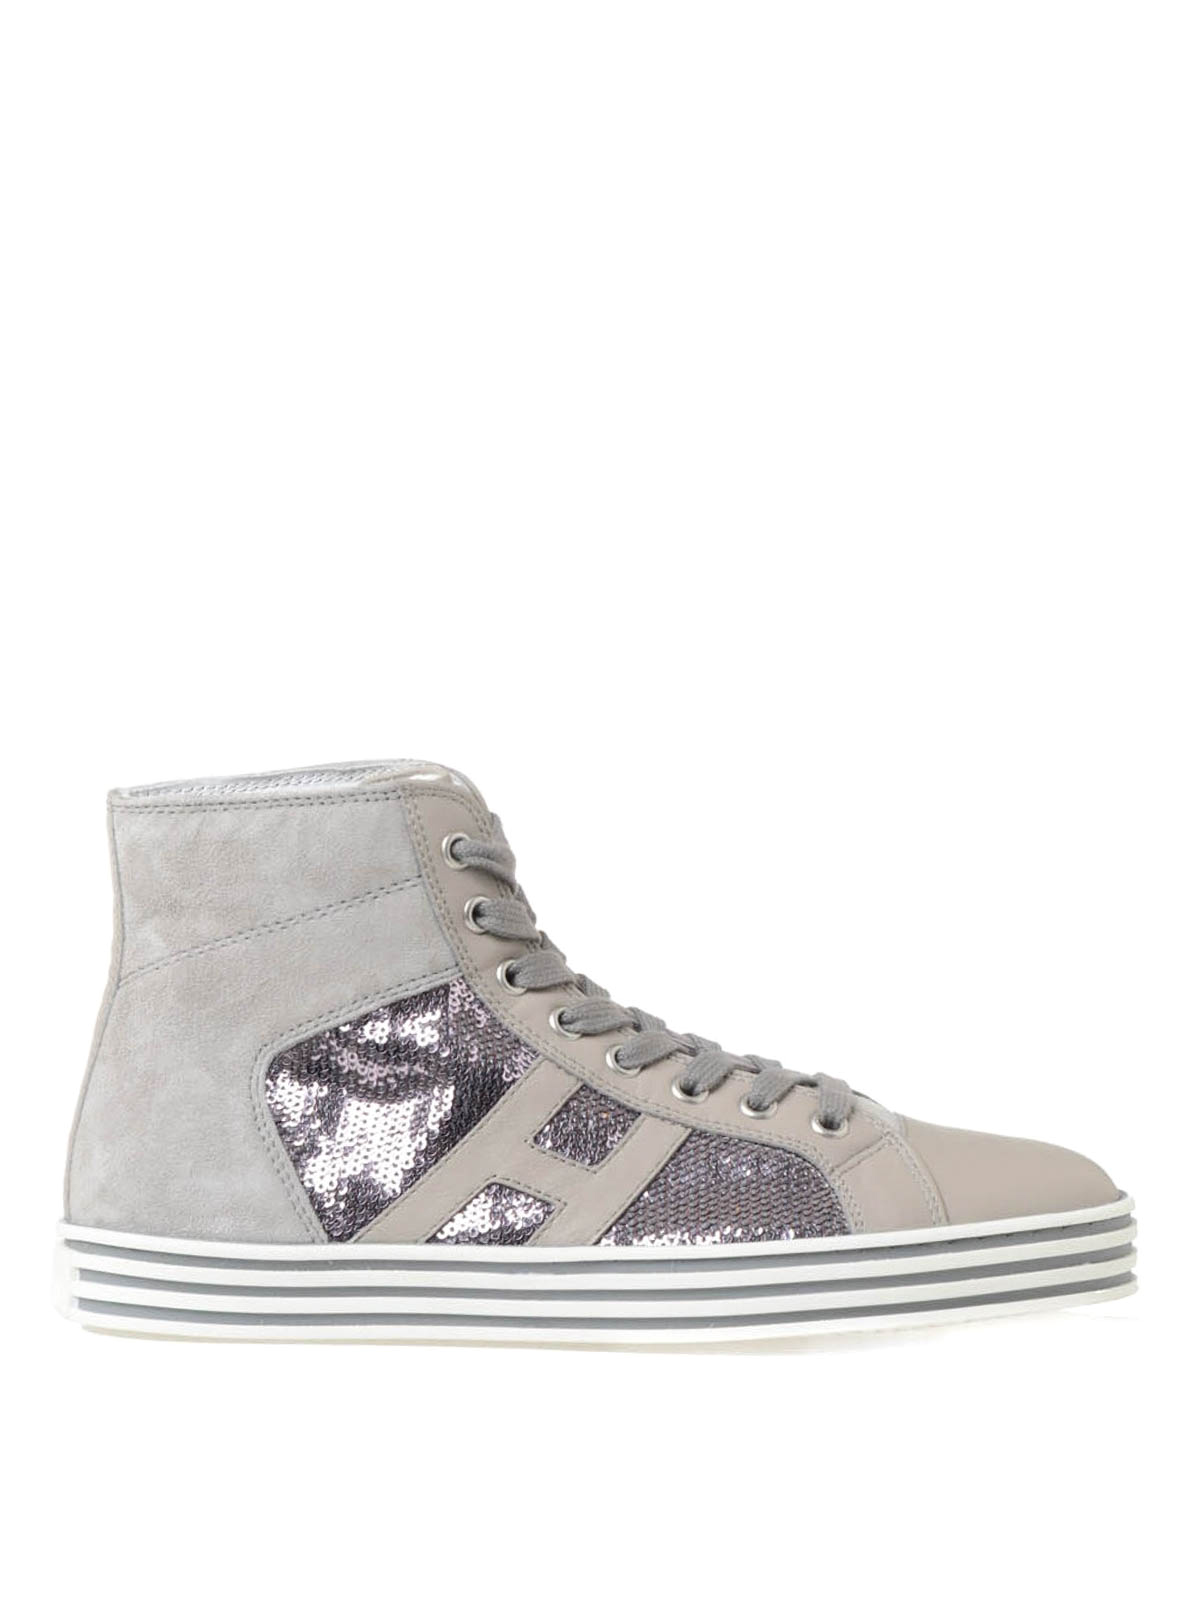 Alta qualit Sneakers Hogan Rebel con Paillettes vendita